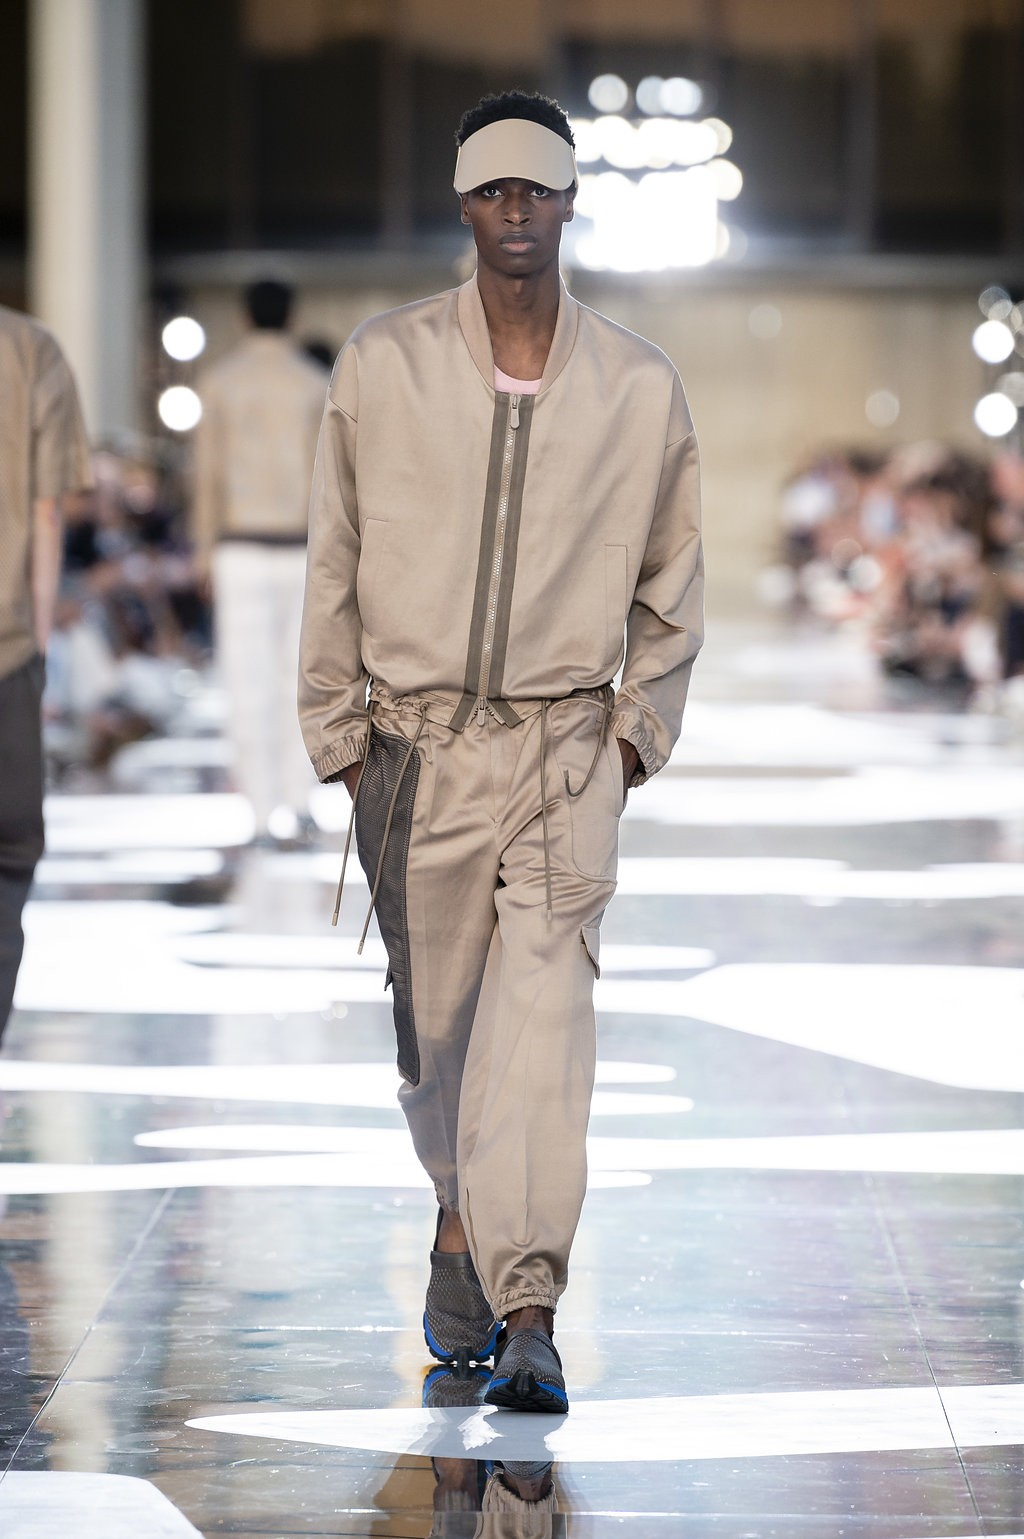 ab64ab1530075 STYLE Edit  Zegna s Alessandro Sartori goes  weightless  with spring summer  collection